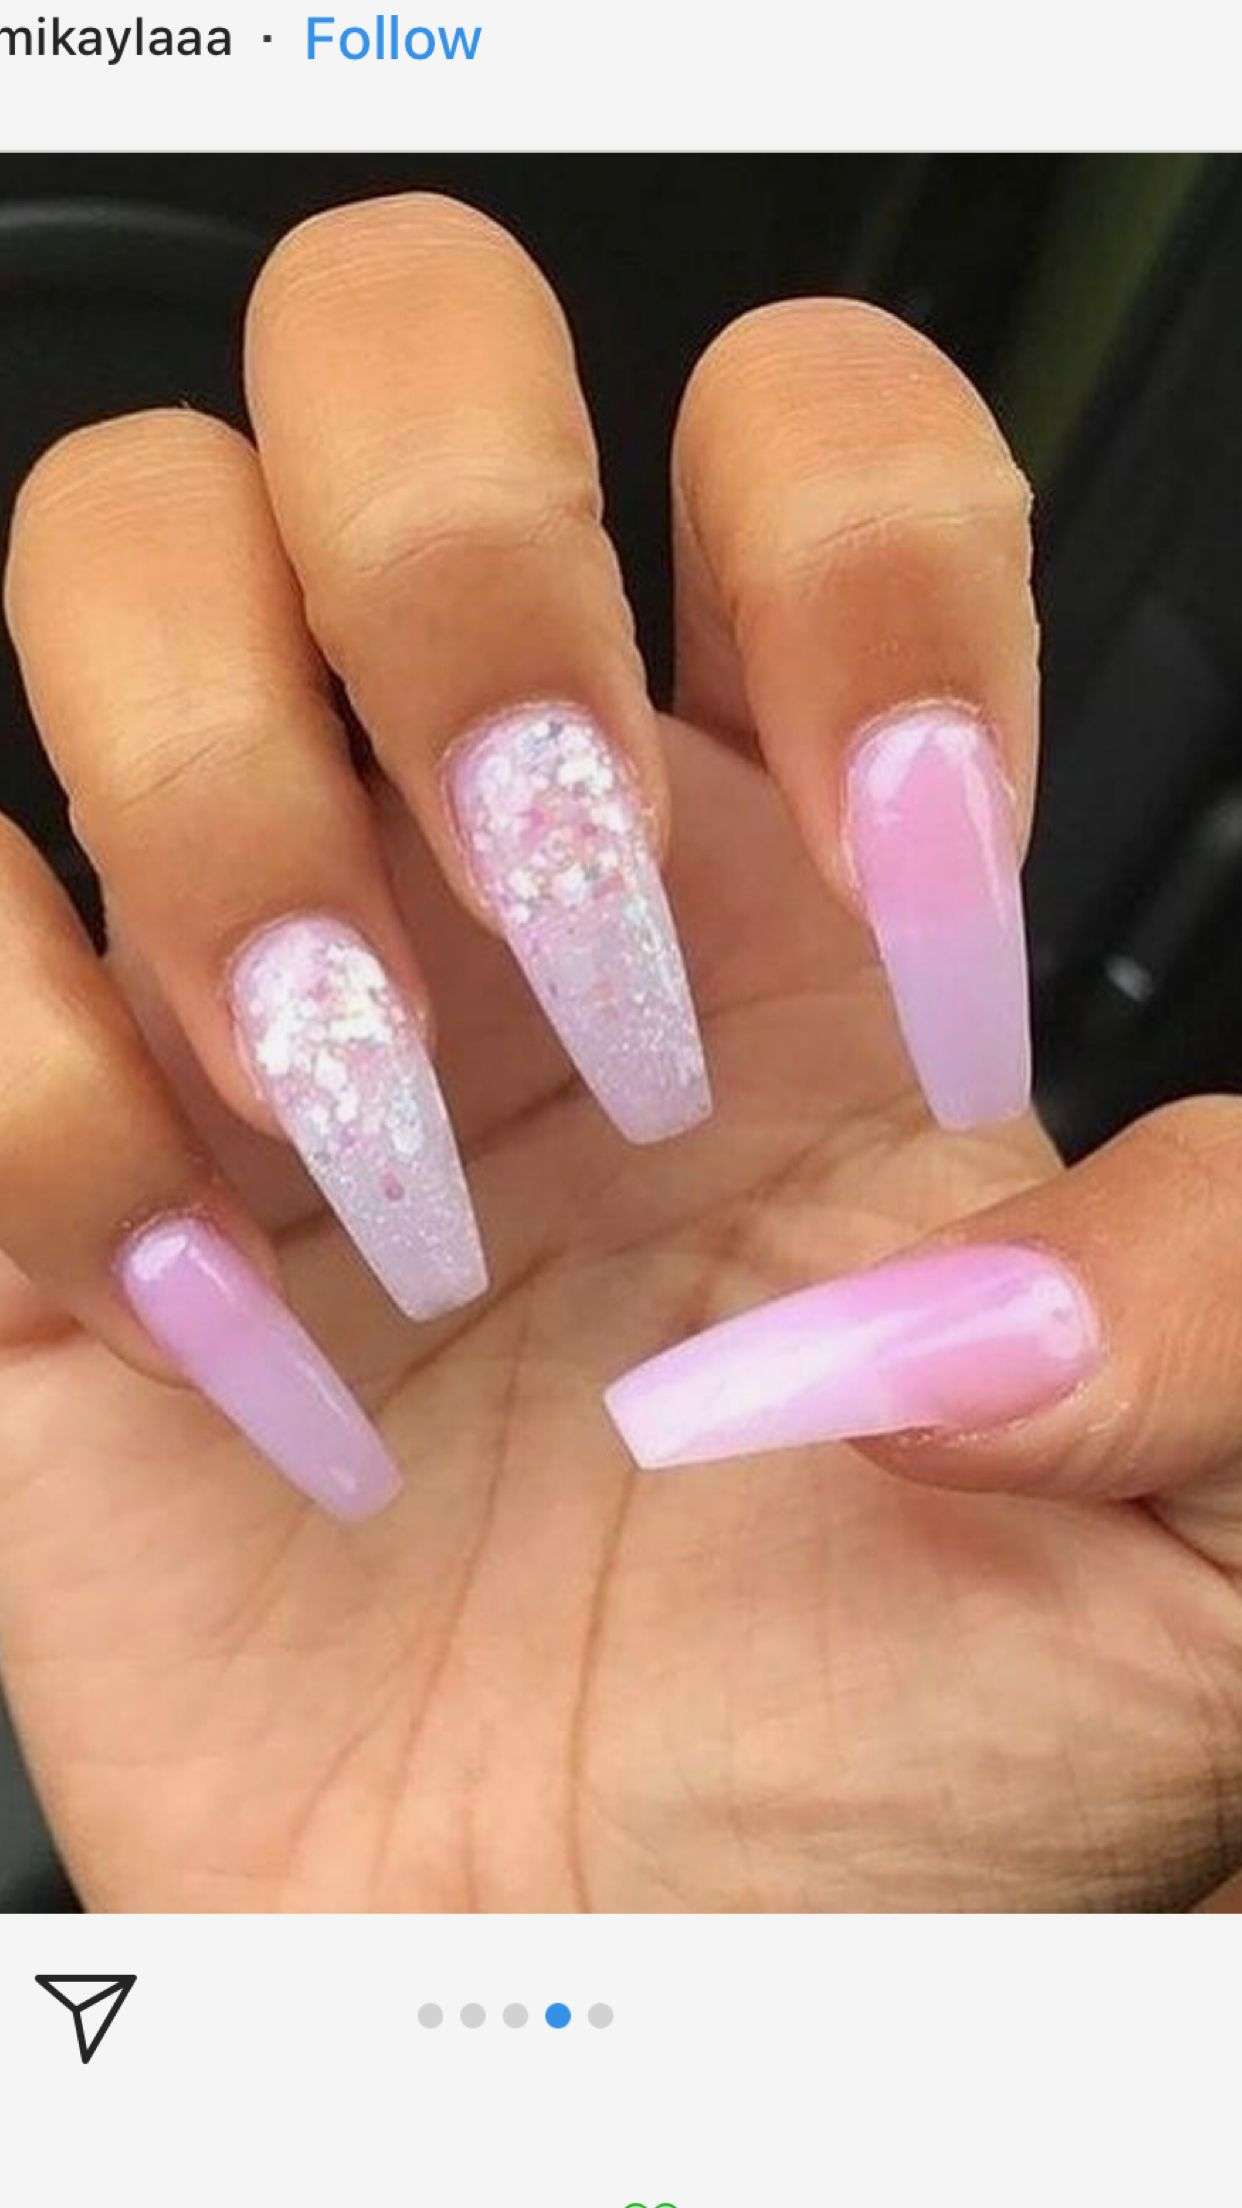 Birthday Nails I Can Totally Do This Myself Cute Acrylic Nails Pretty Nails Nails